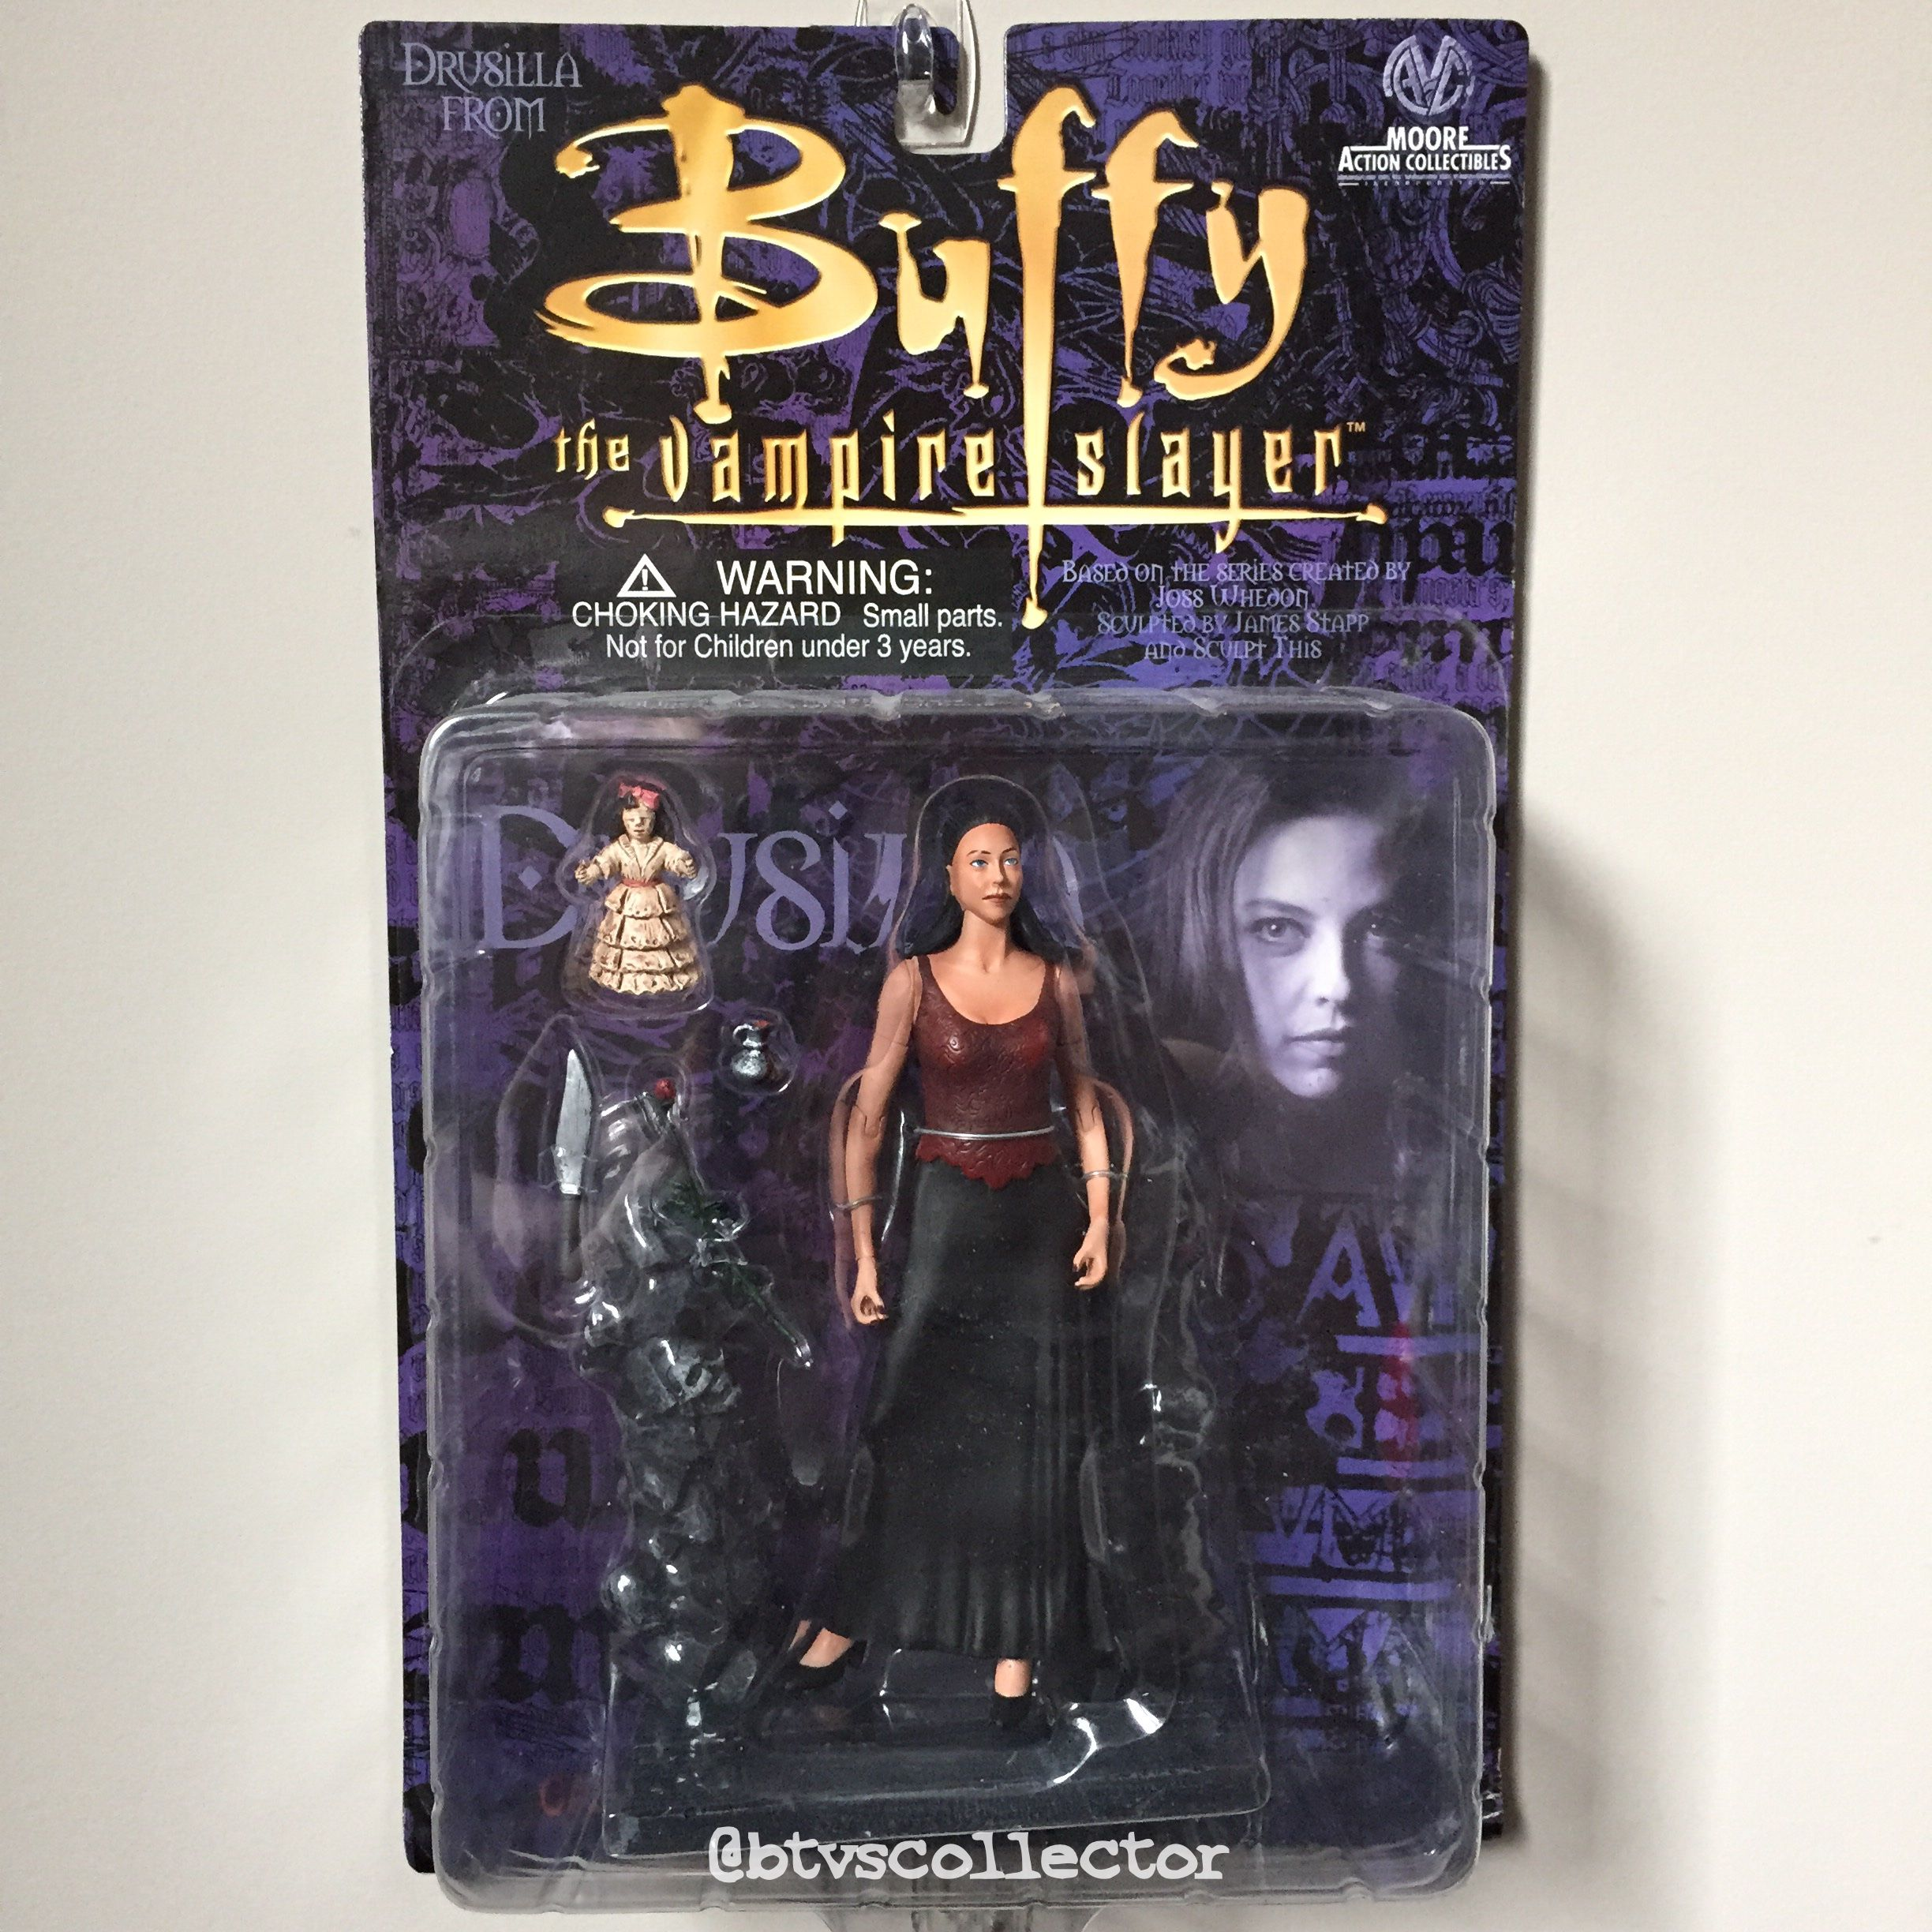 Moore action collectibles buffy the vampire slayer figure moore action collectibles buffy the vampire slayer figure drusilla fandeluxe Document